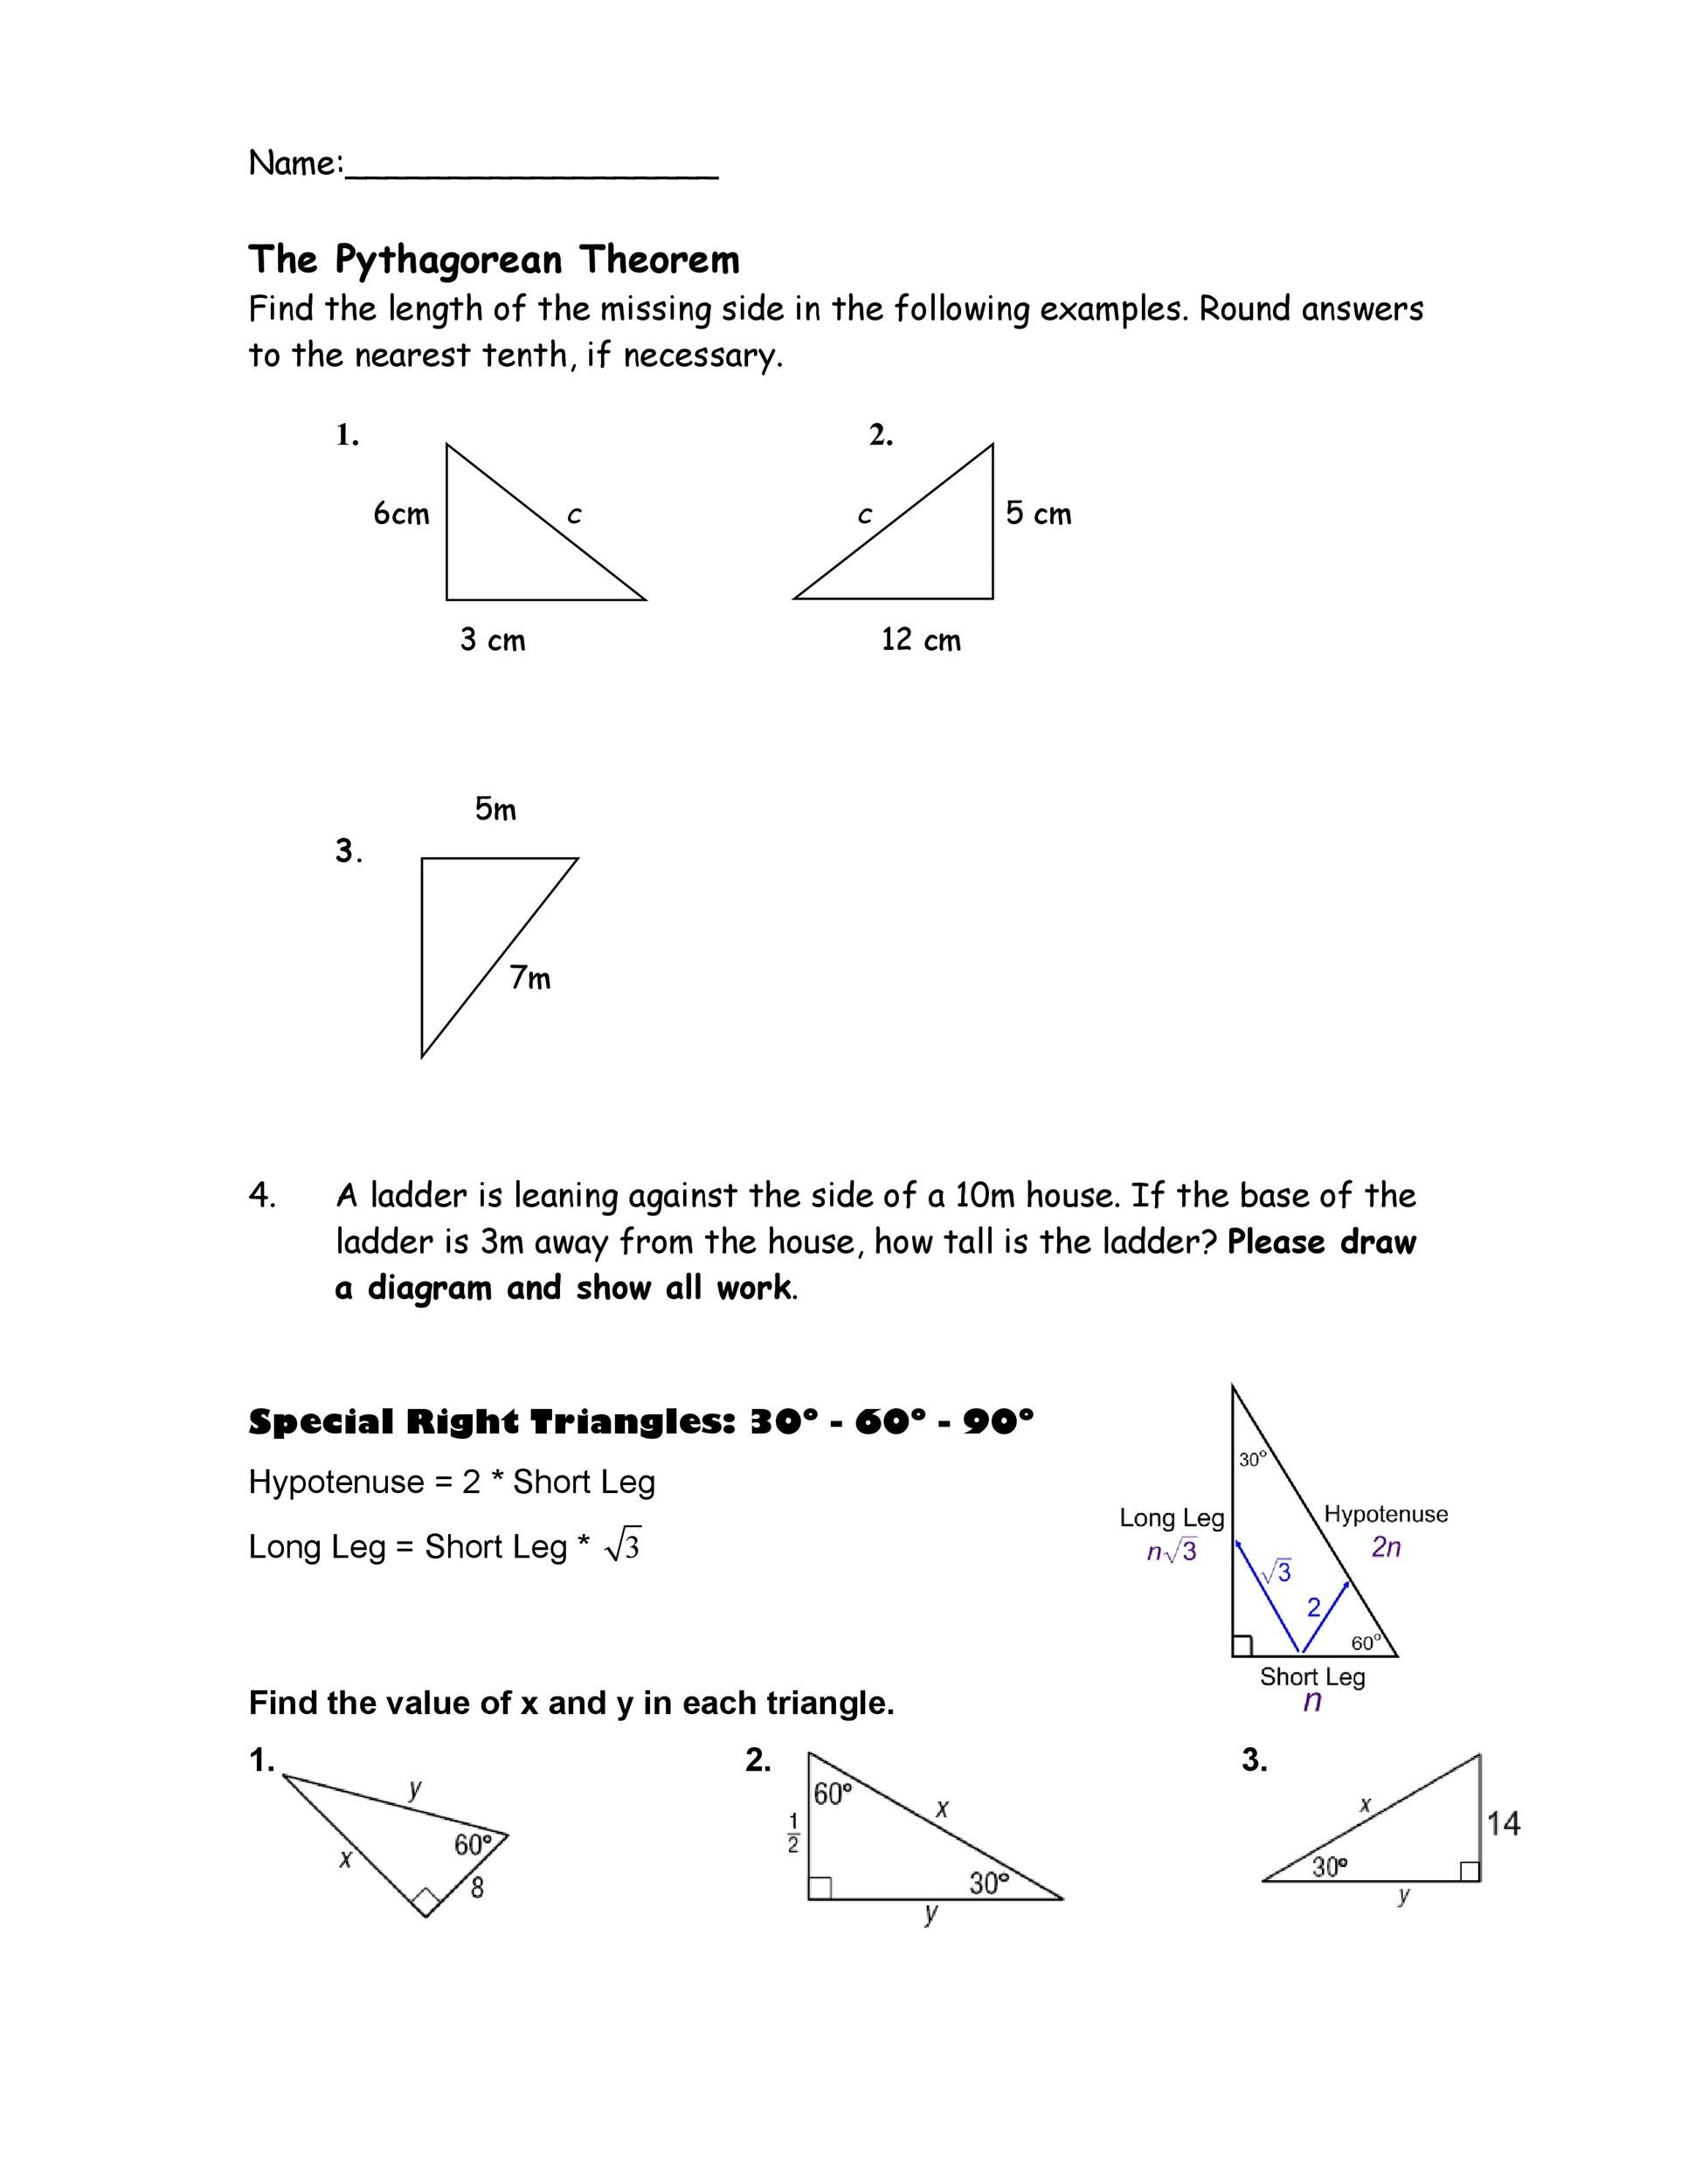 Free pythagorean theorem 20